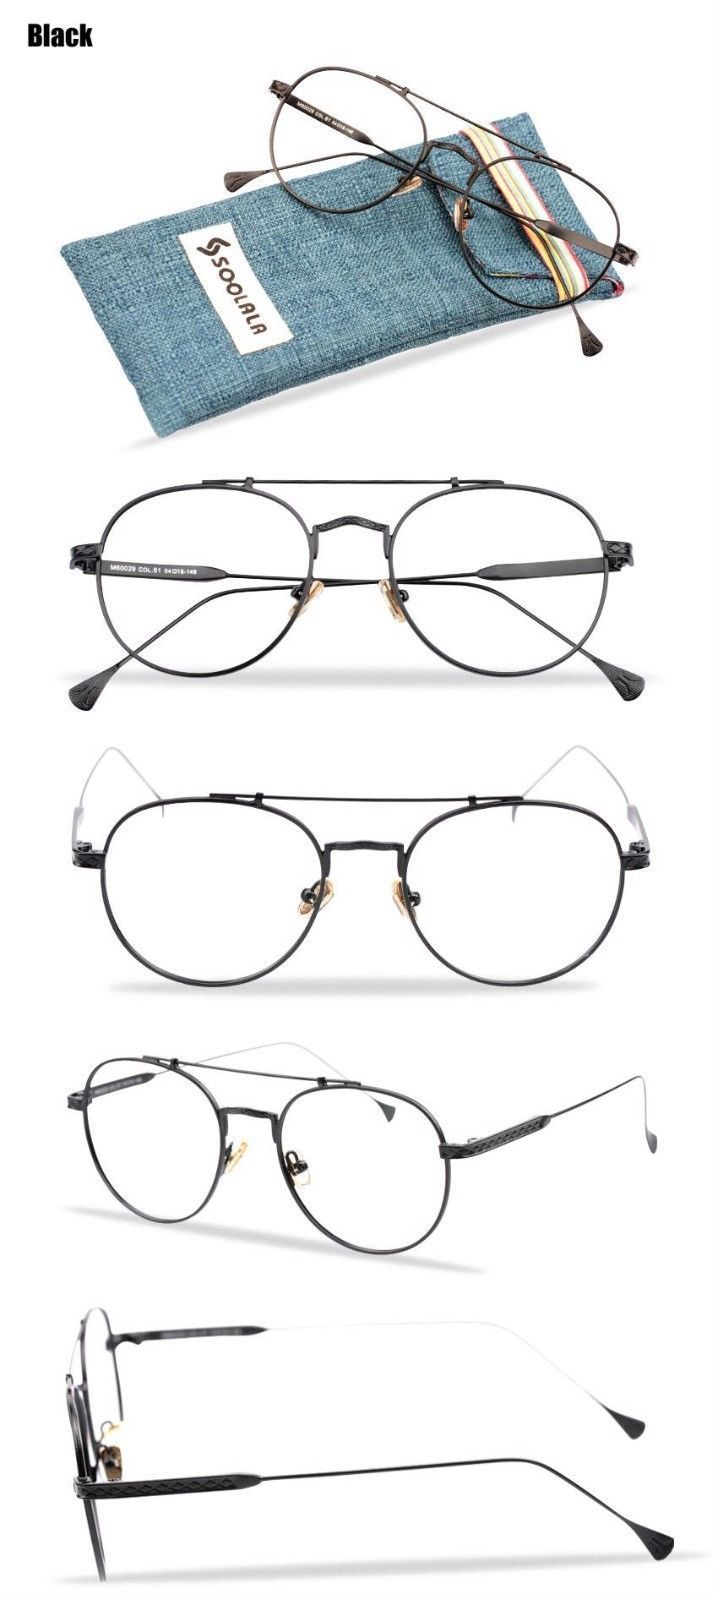 331972b6ff Reading Glasses Men Round Metal Frame Women Reader Glasses Circle Clear  Lenses